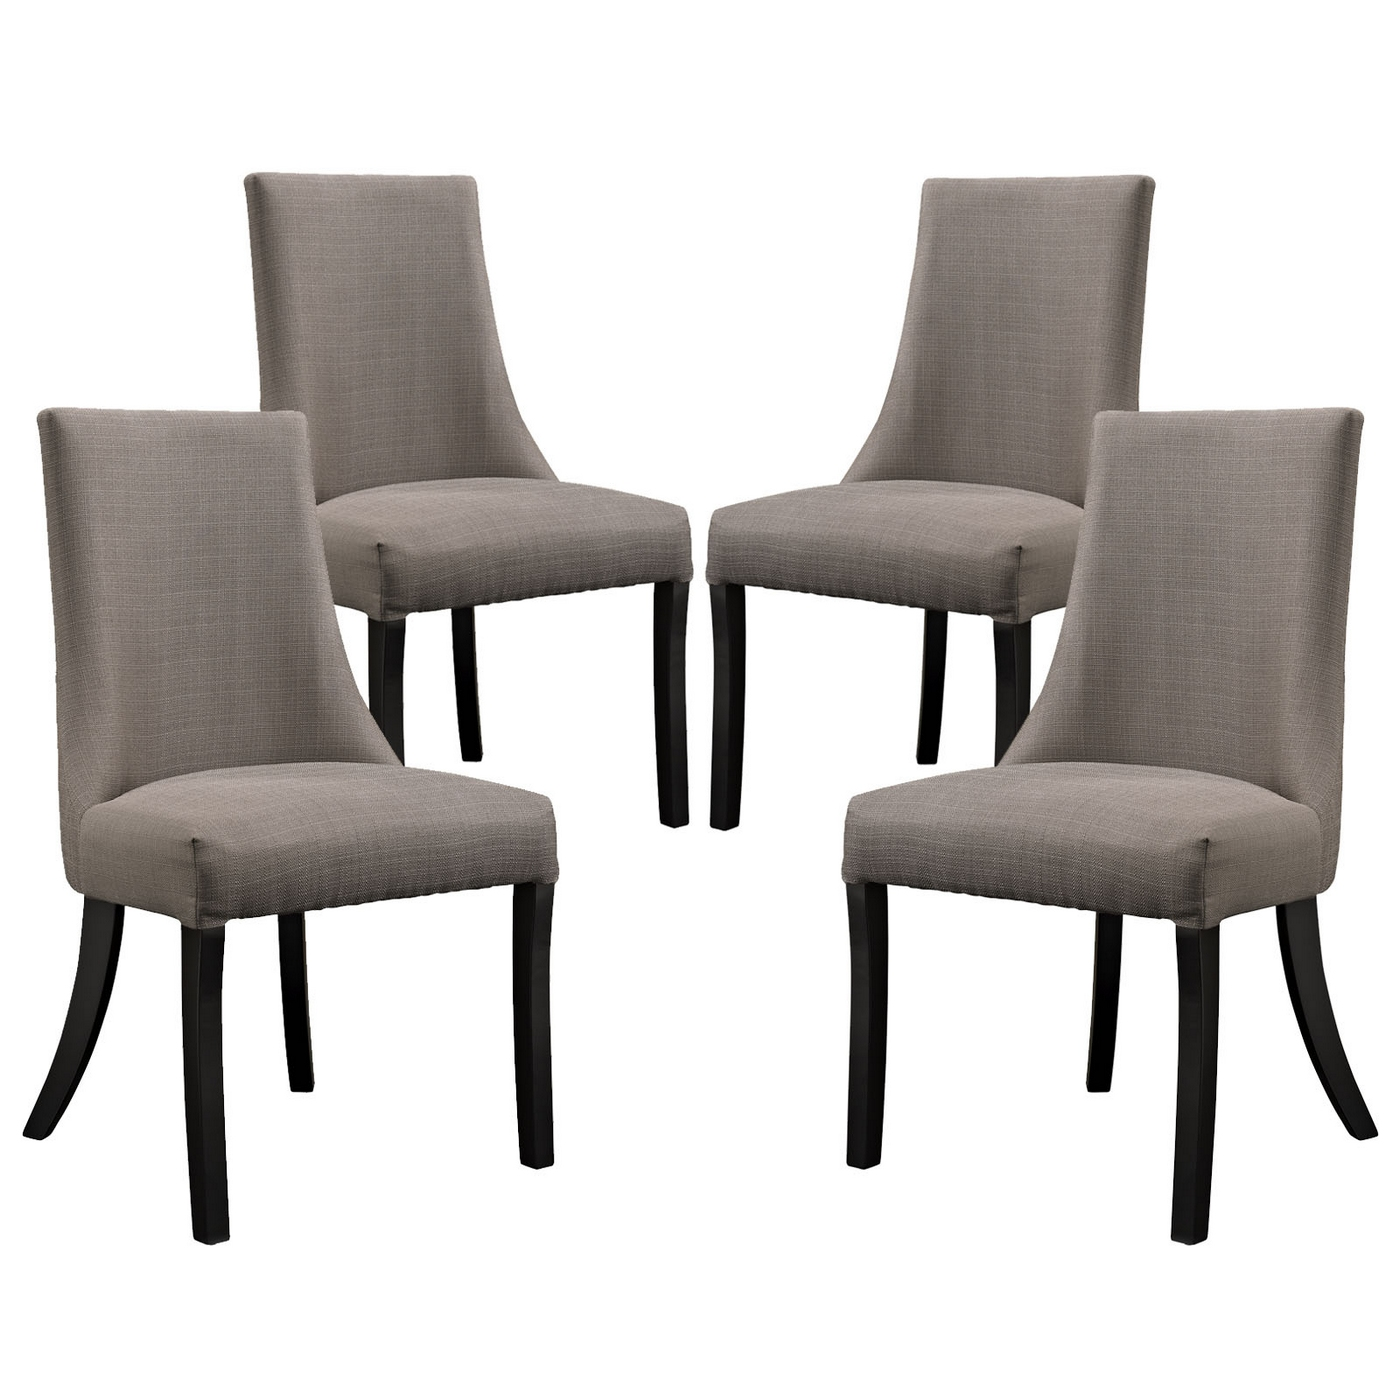 Set of reverie upholstered dining side chair with wood